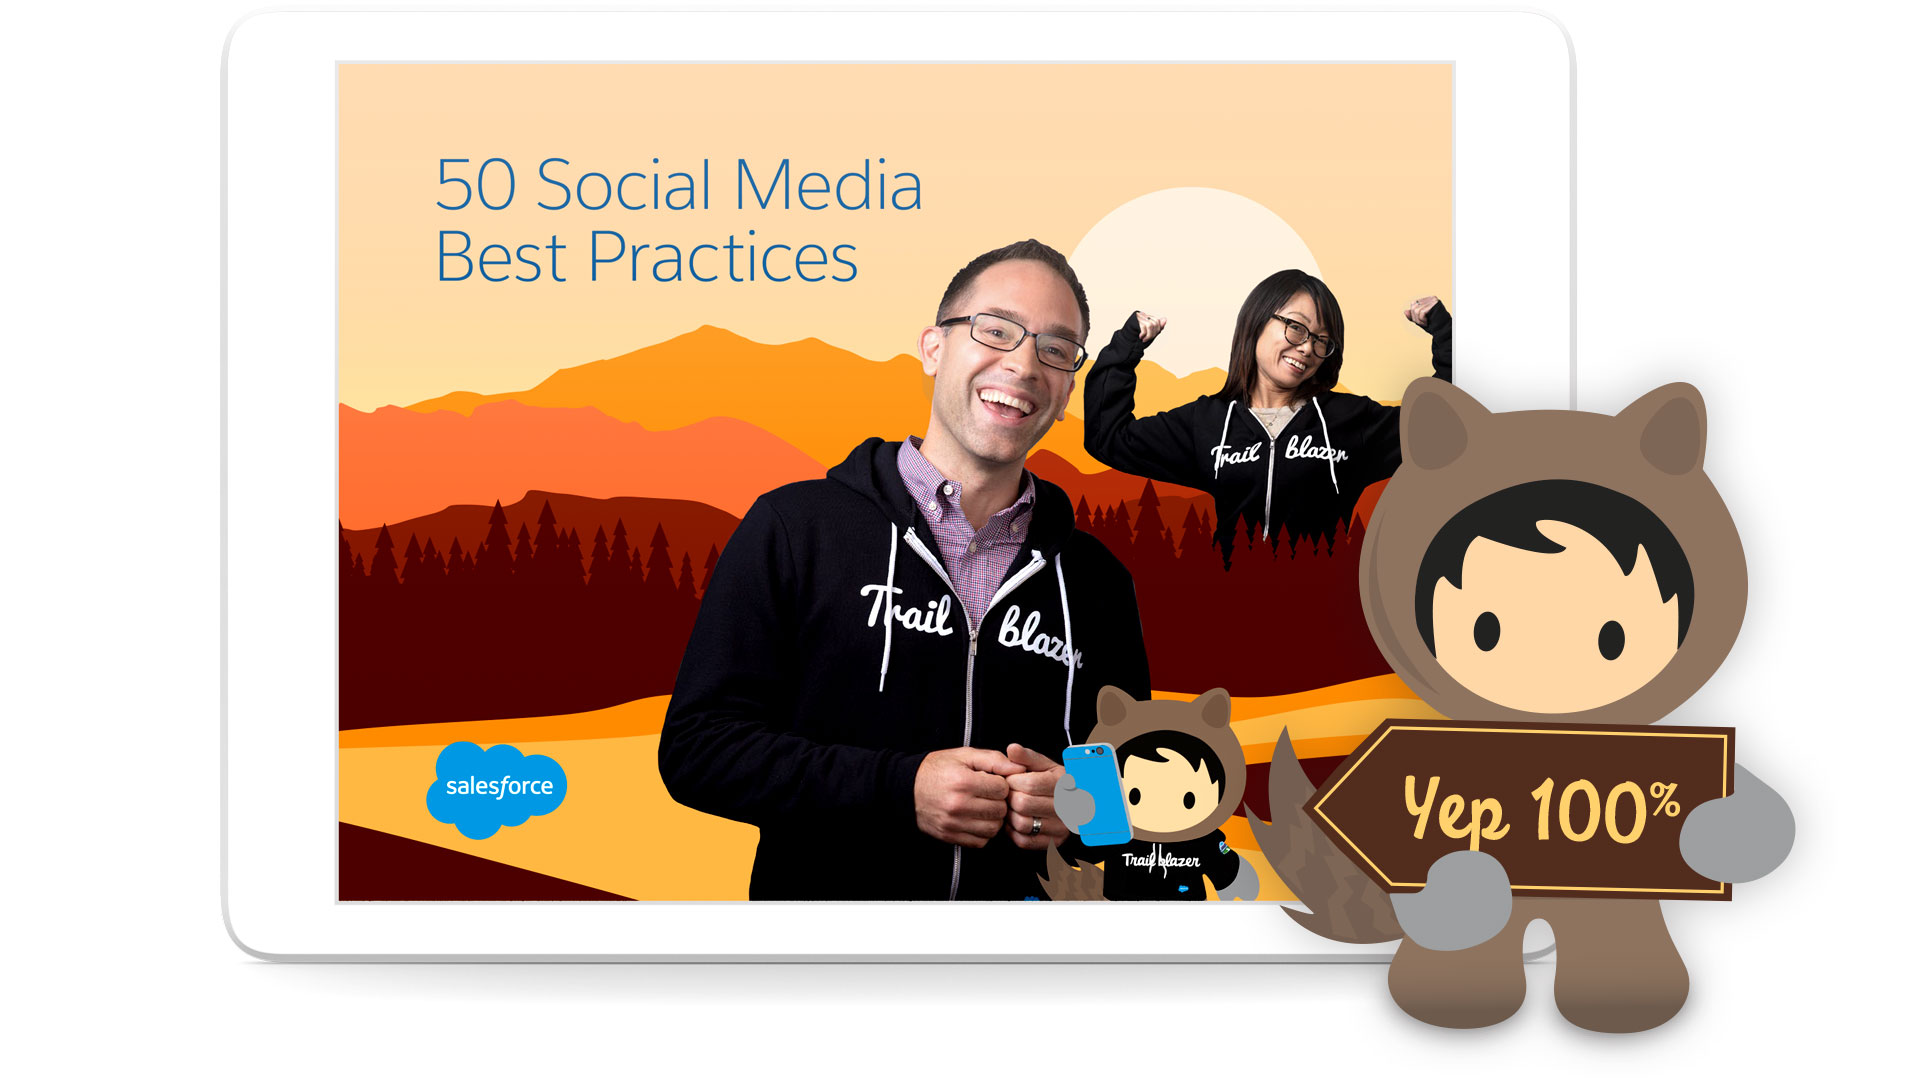 Salesforce Blog  News tips and insights from the global